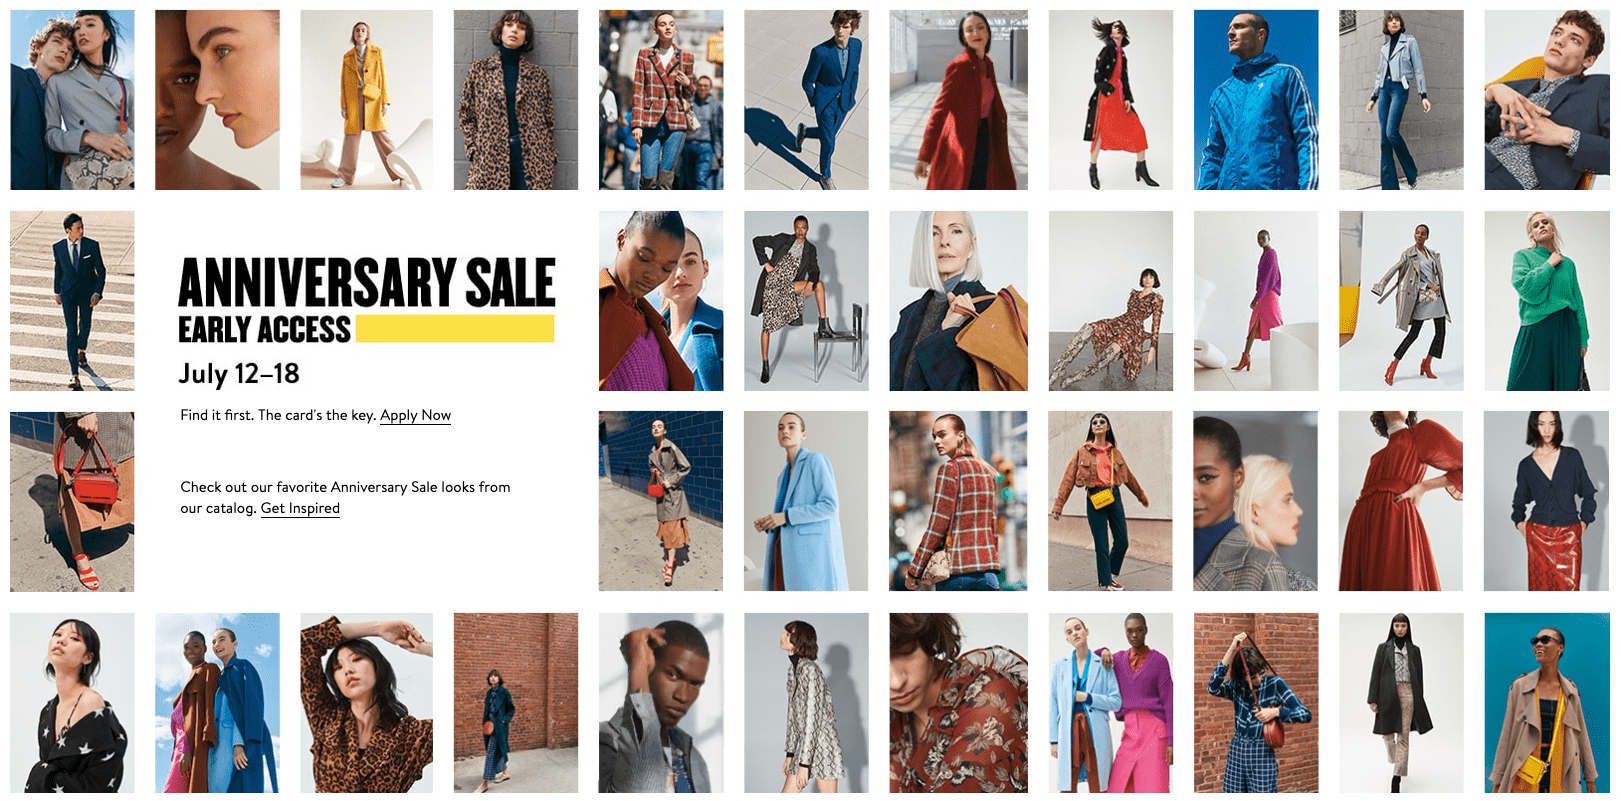 This is a collage from the NSALE catalog.